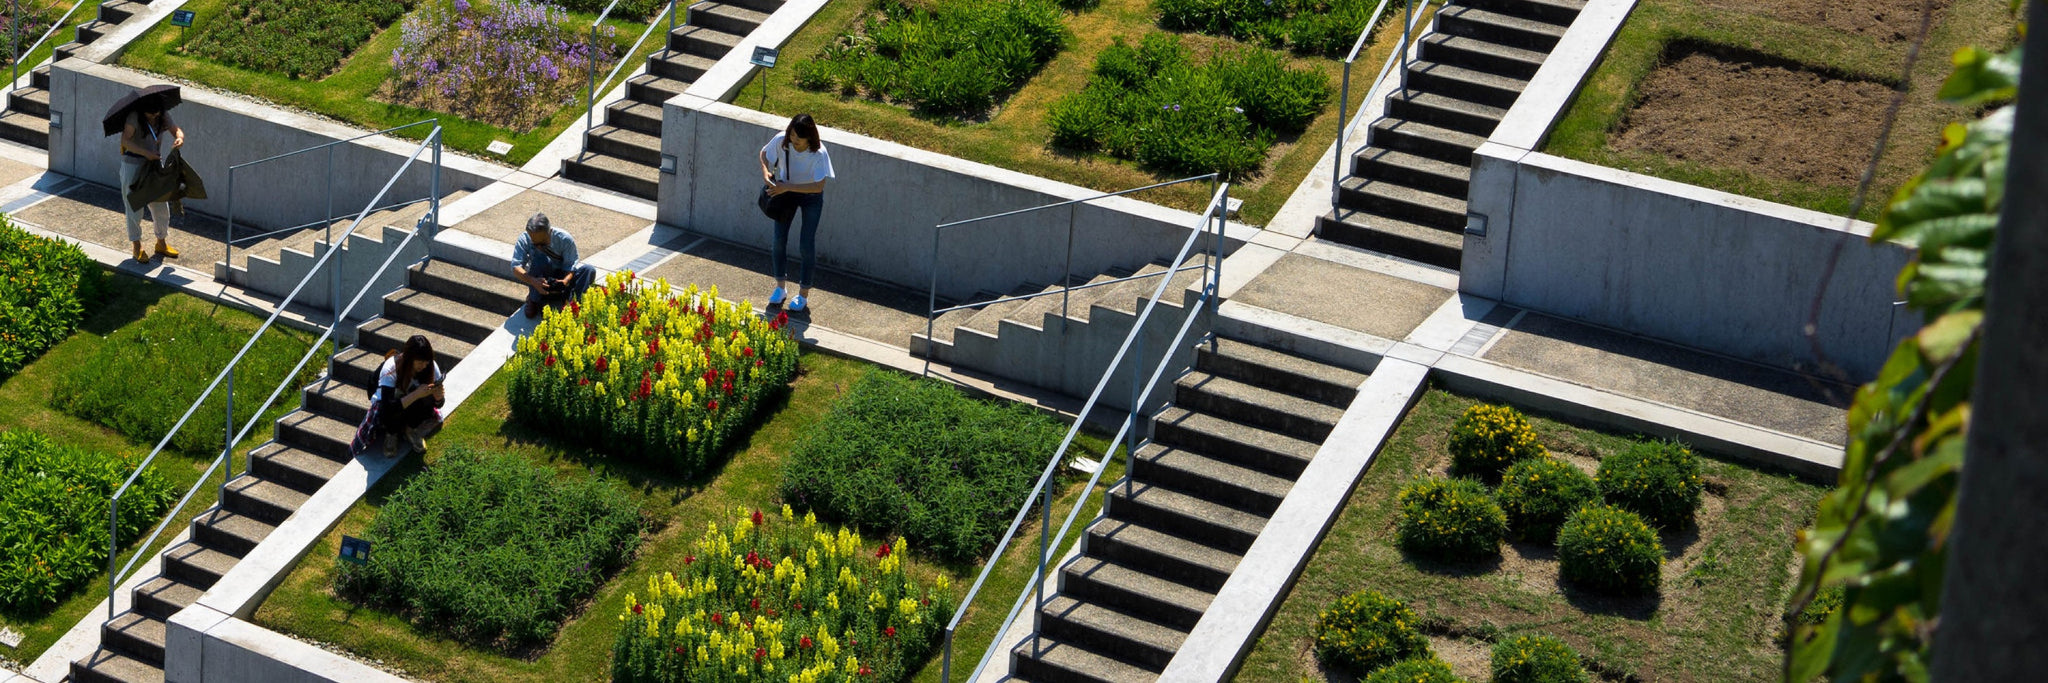 Cool Neighborhoods - Greening Roofs in NYC